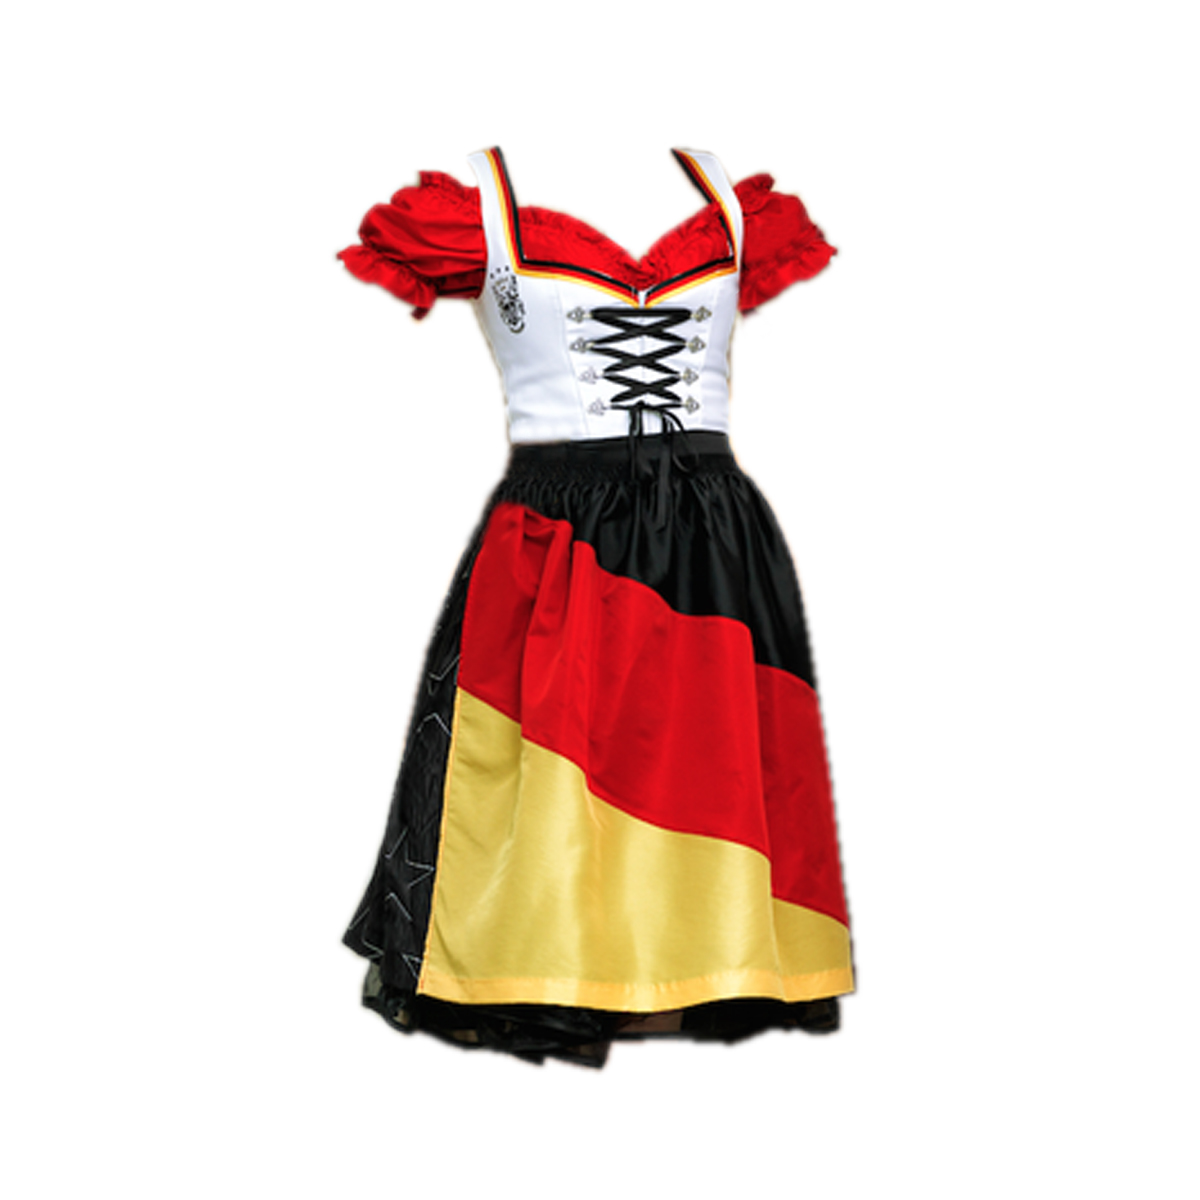 PRINCESS DIRNDL WITH APPAREL